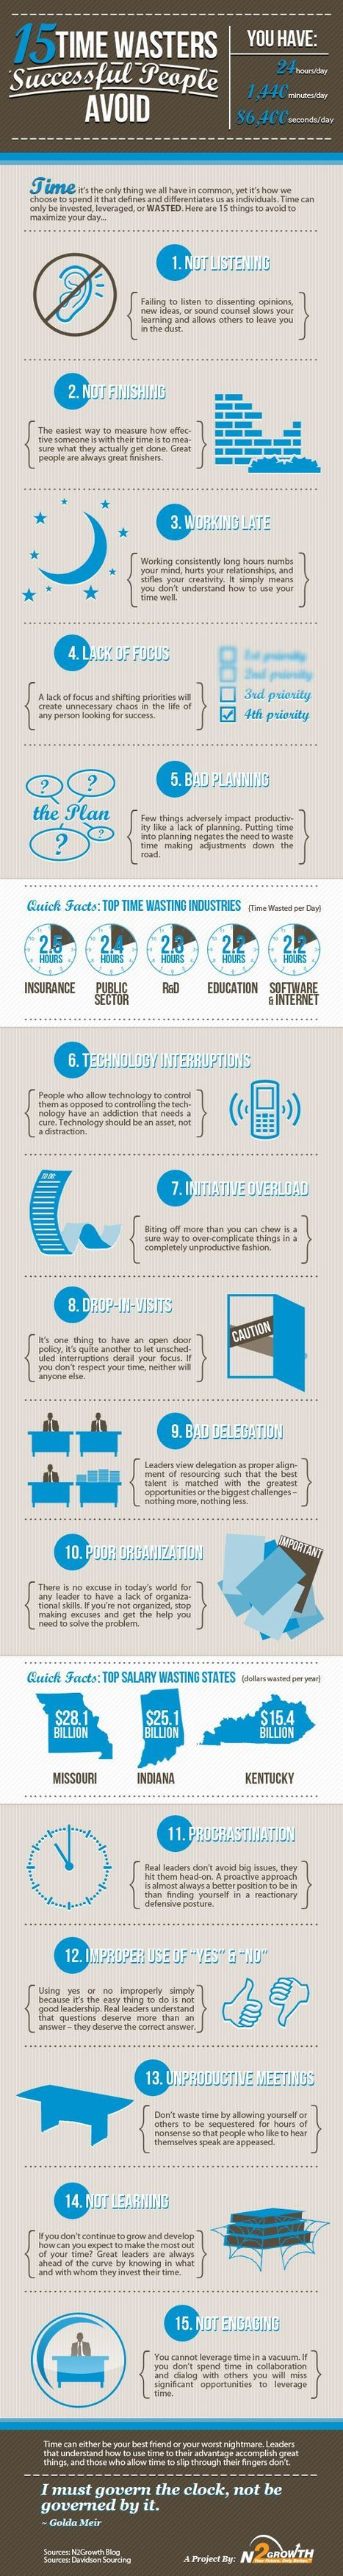 15 Time Wasters Successful People Avoid [Infographic] | Thriving or Dying in the Project Age | Scoop.it